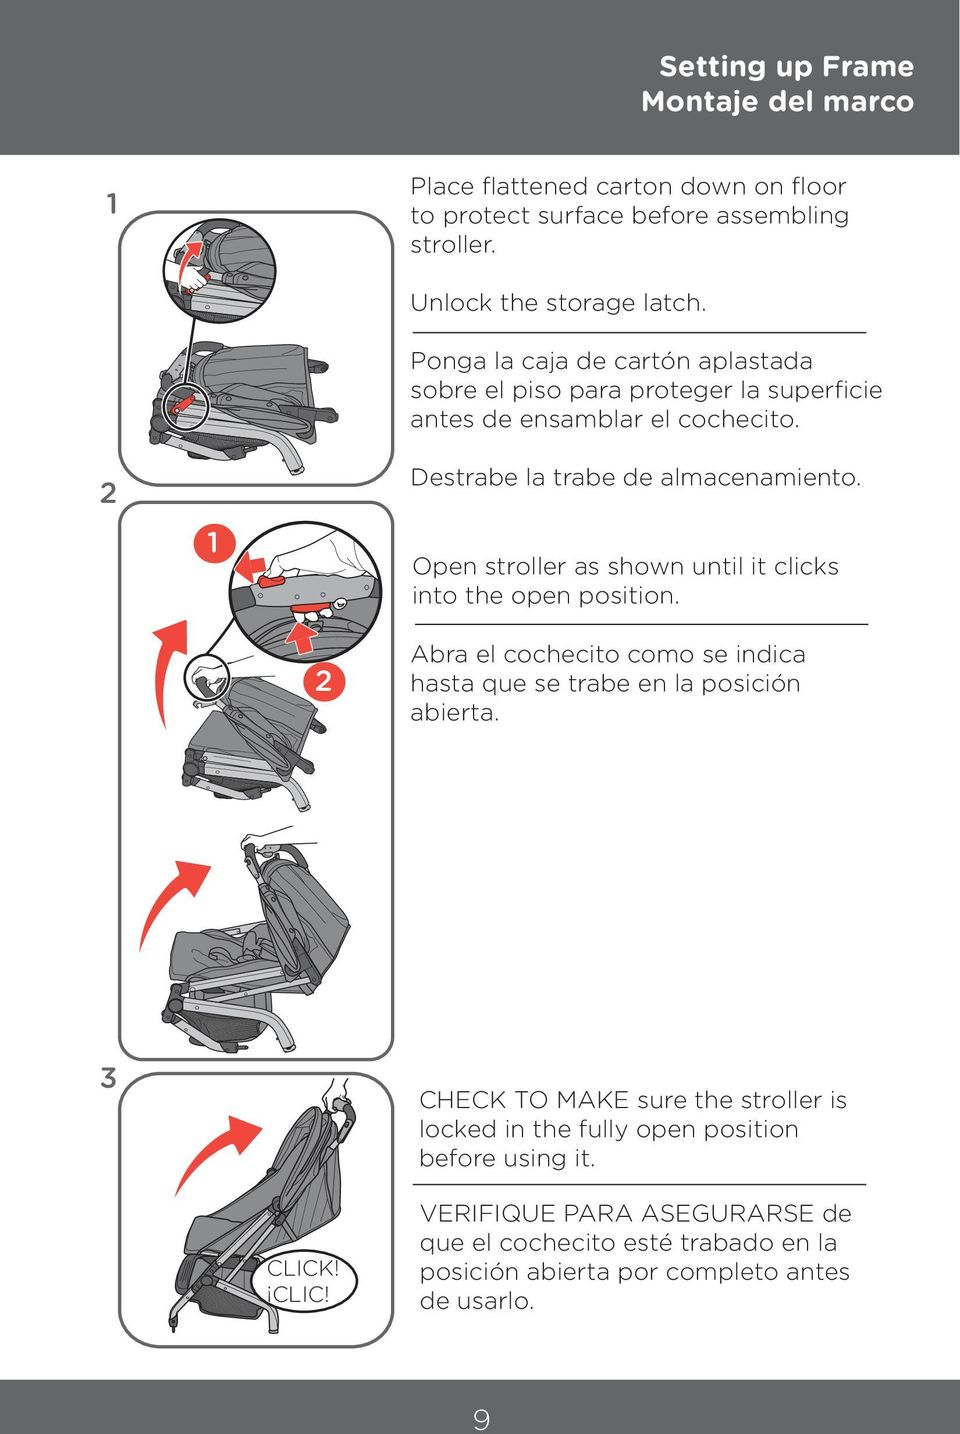 Open stroller as shown until it clicks into the open position. Abra el cochecito como se indica hasta que se trabe en la posición abierta.